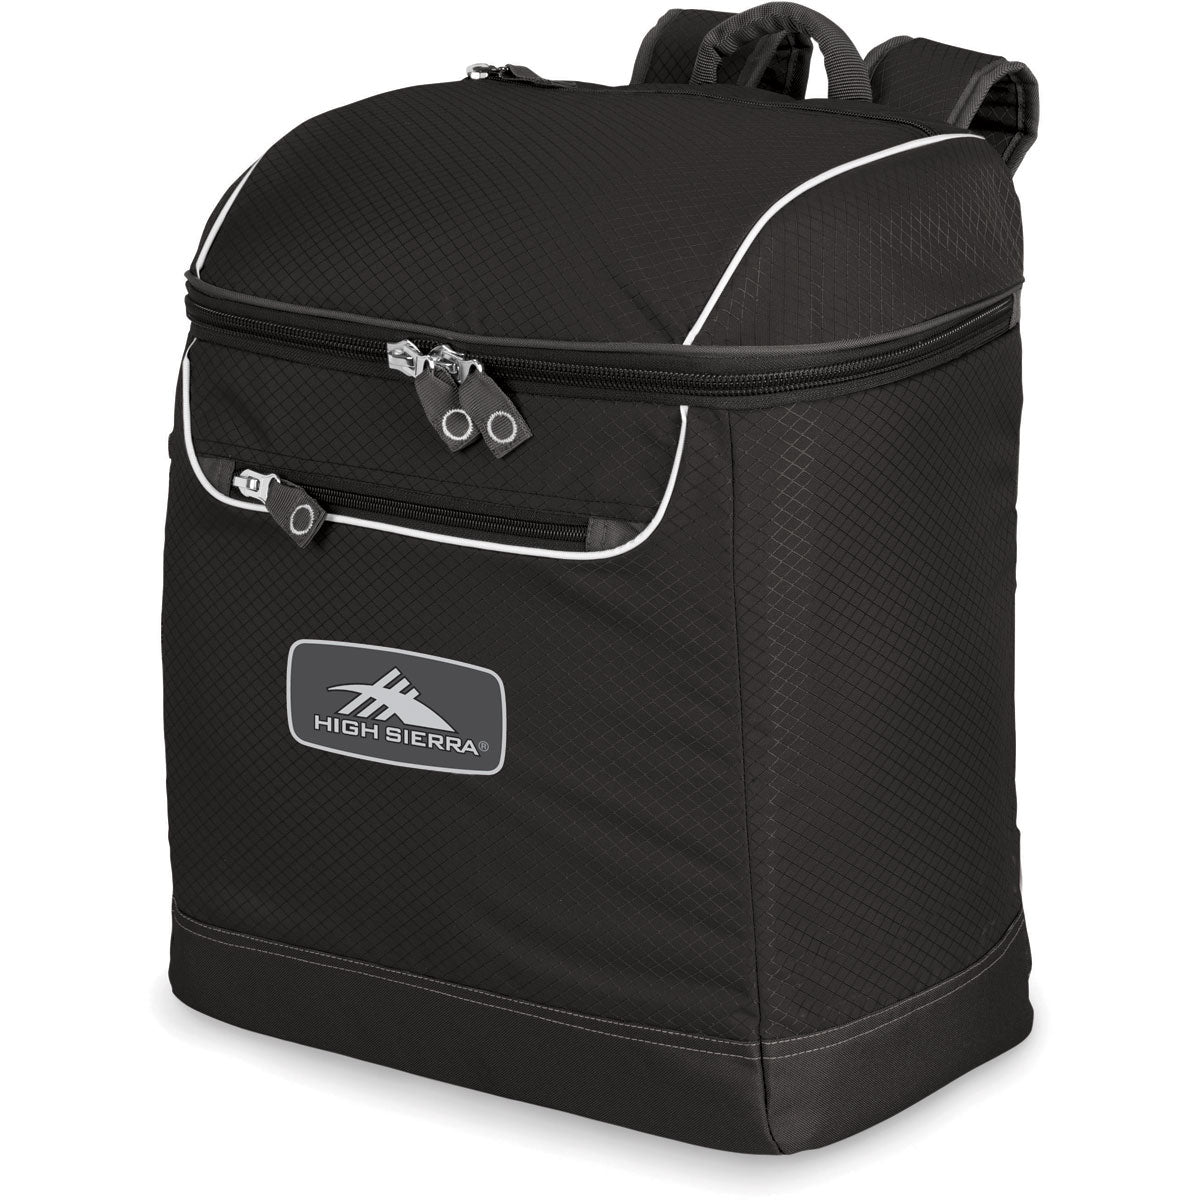 High Sierra Performance Series Bucket Boot Bag